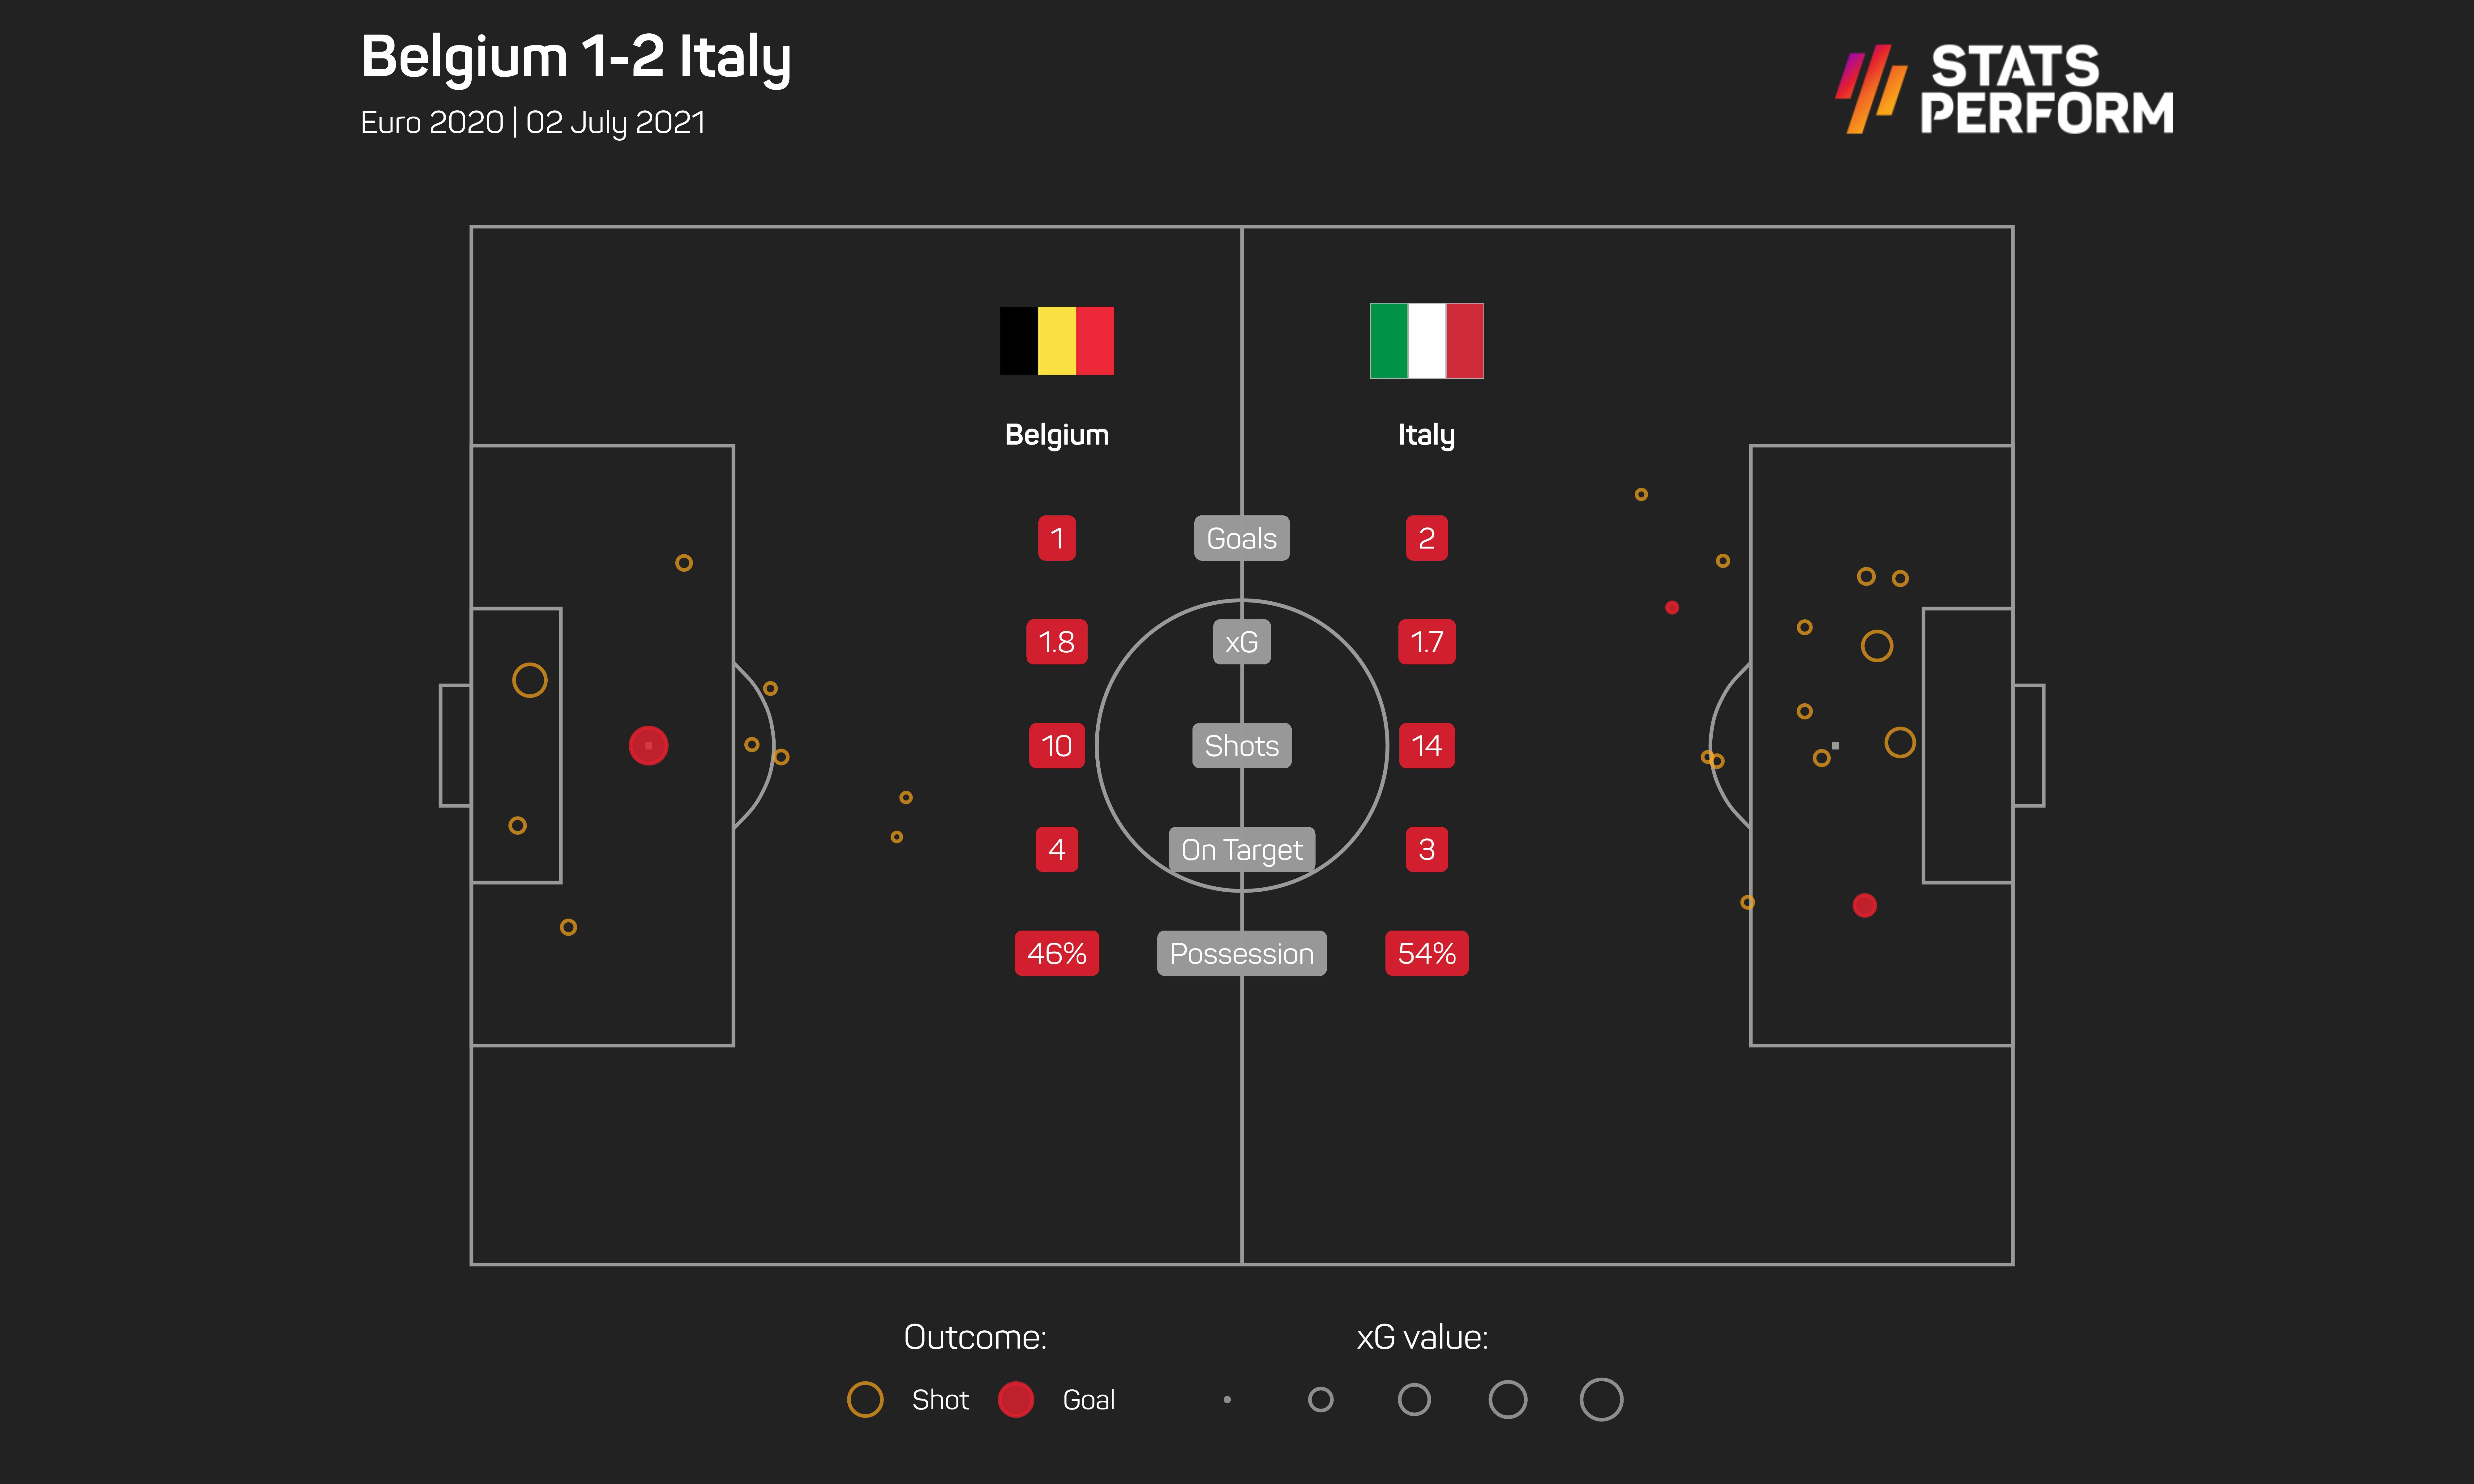 Italy proved themselves against the best